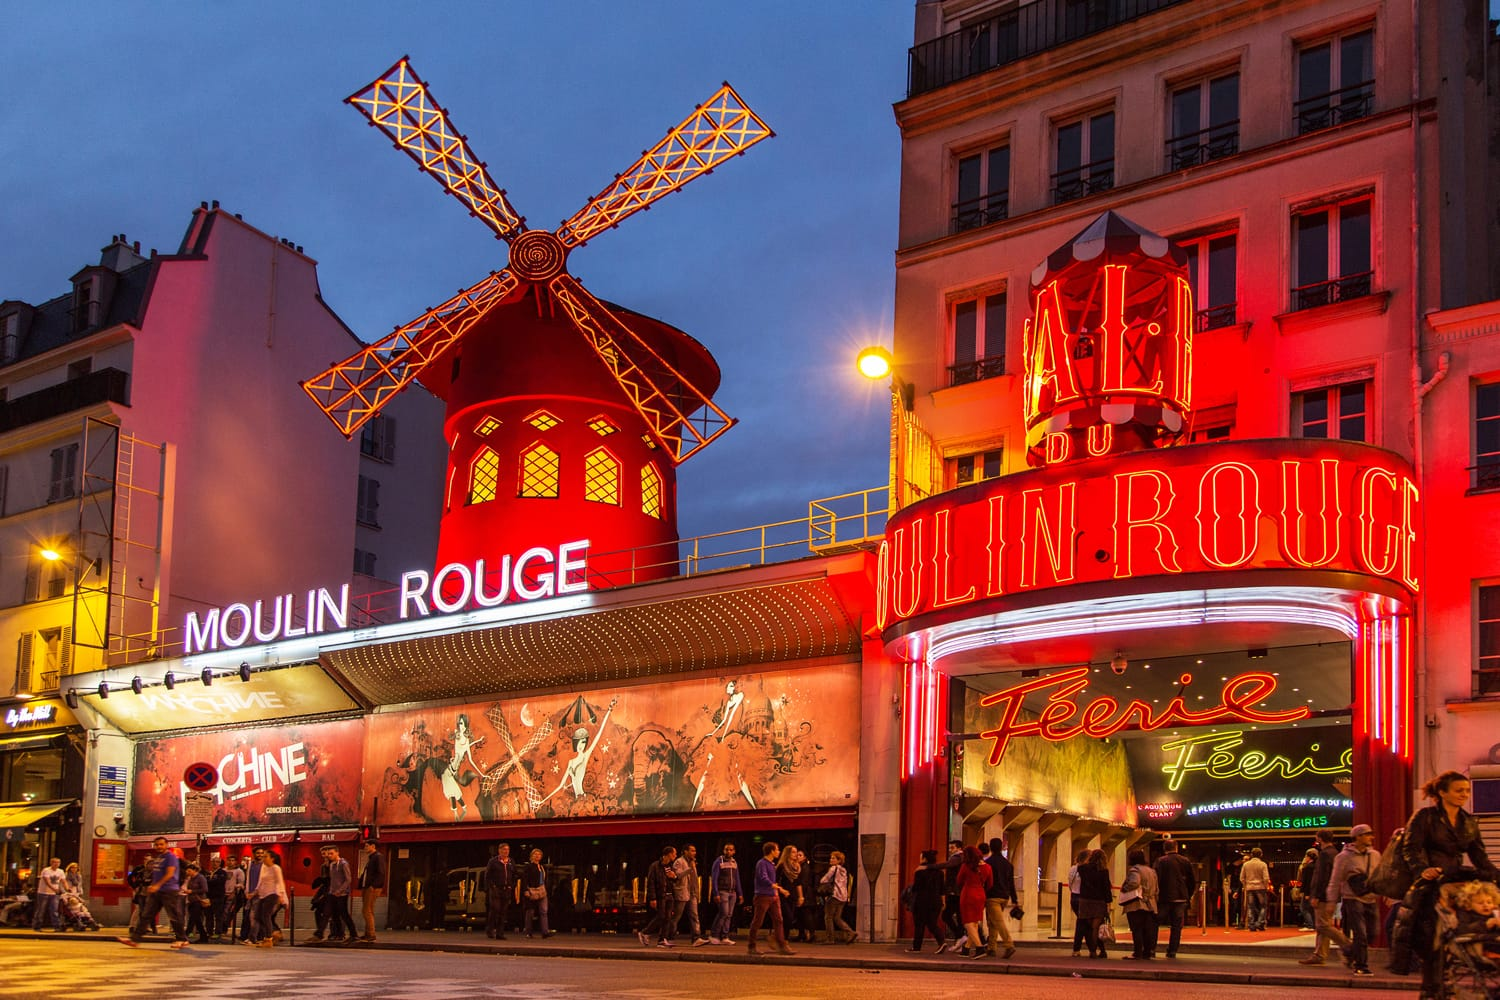 Moulin Rouge in Paris at night